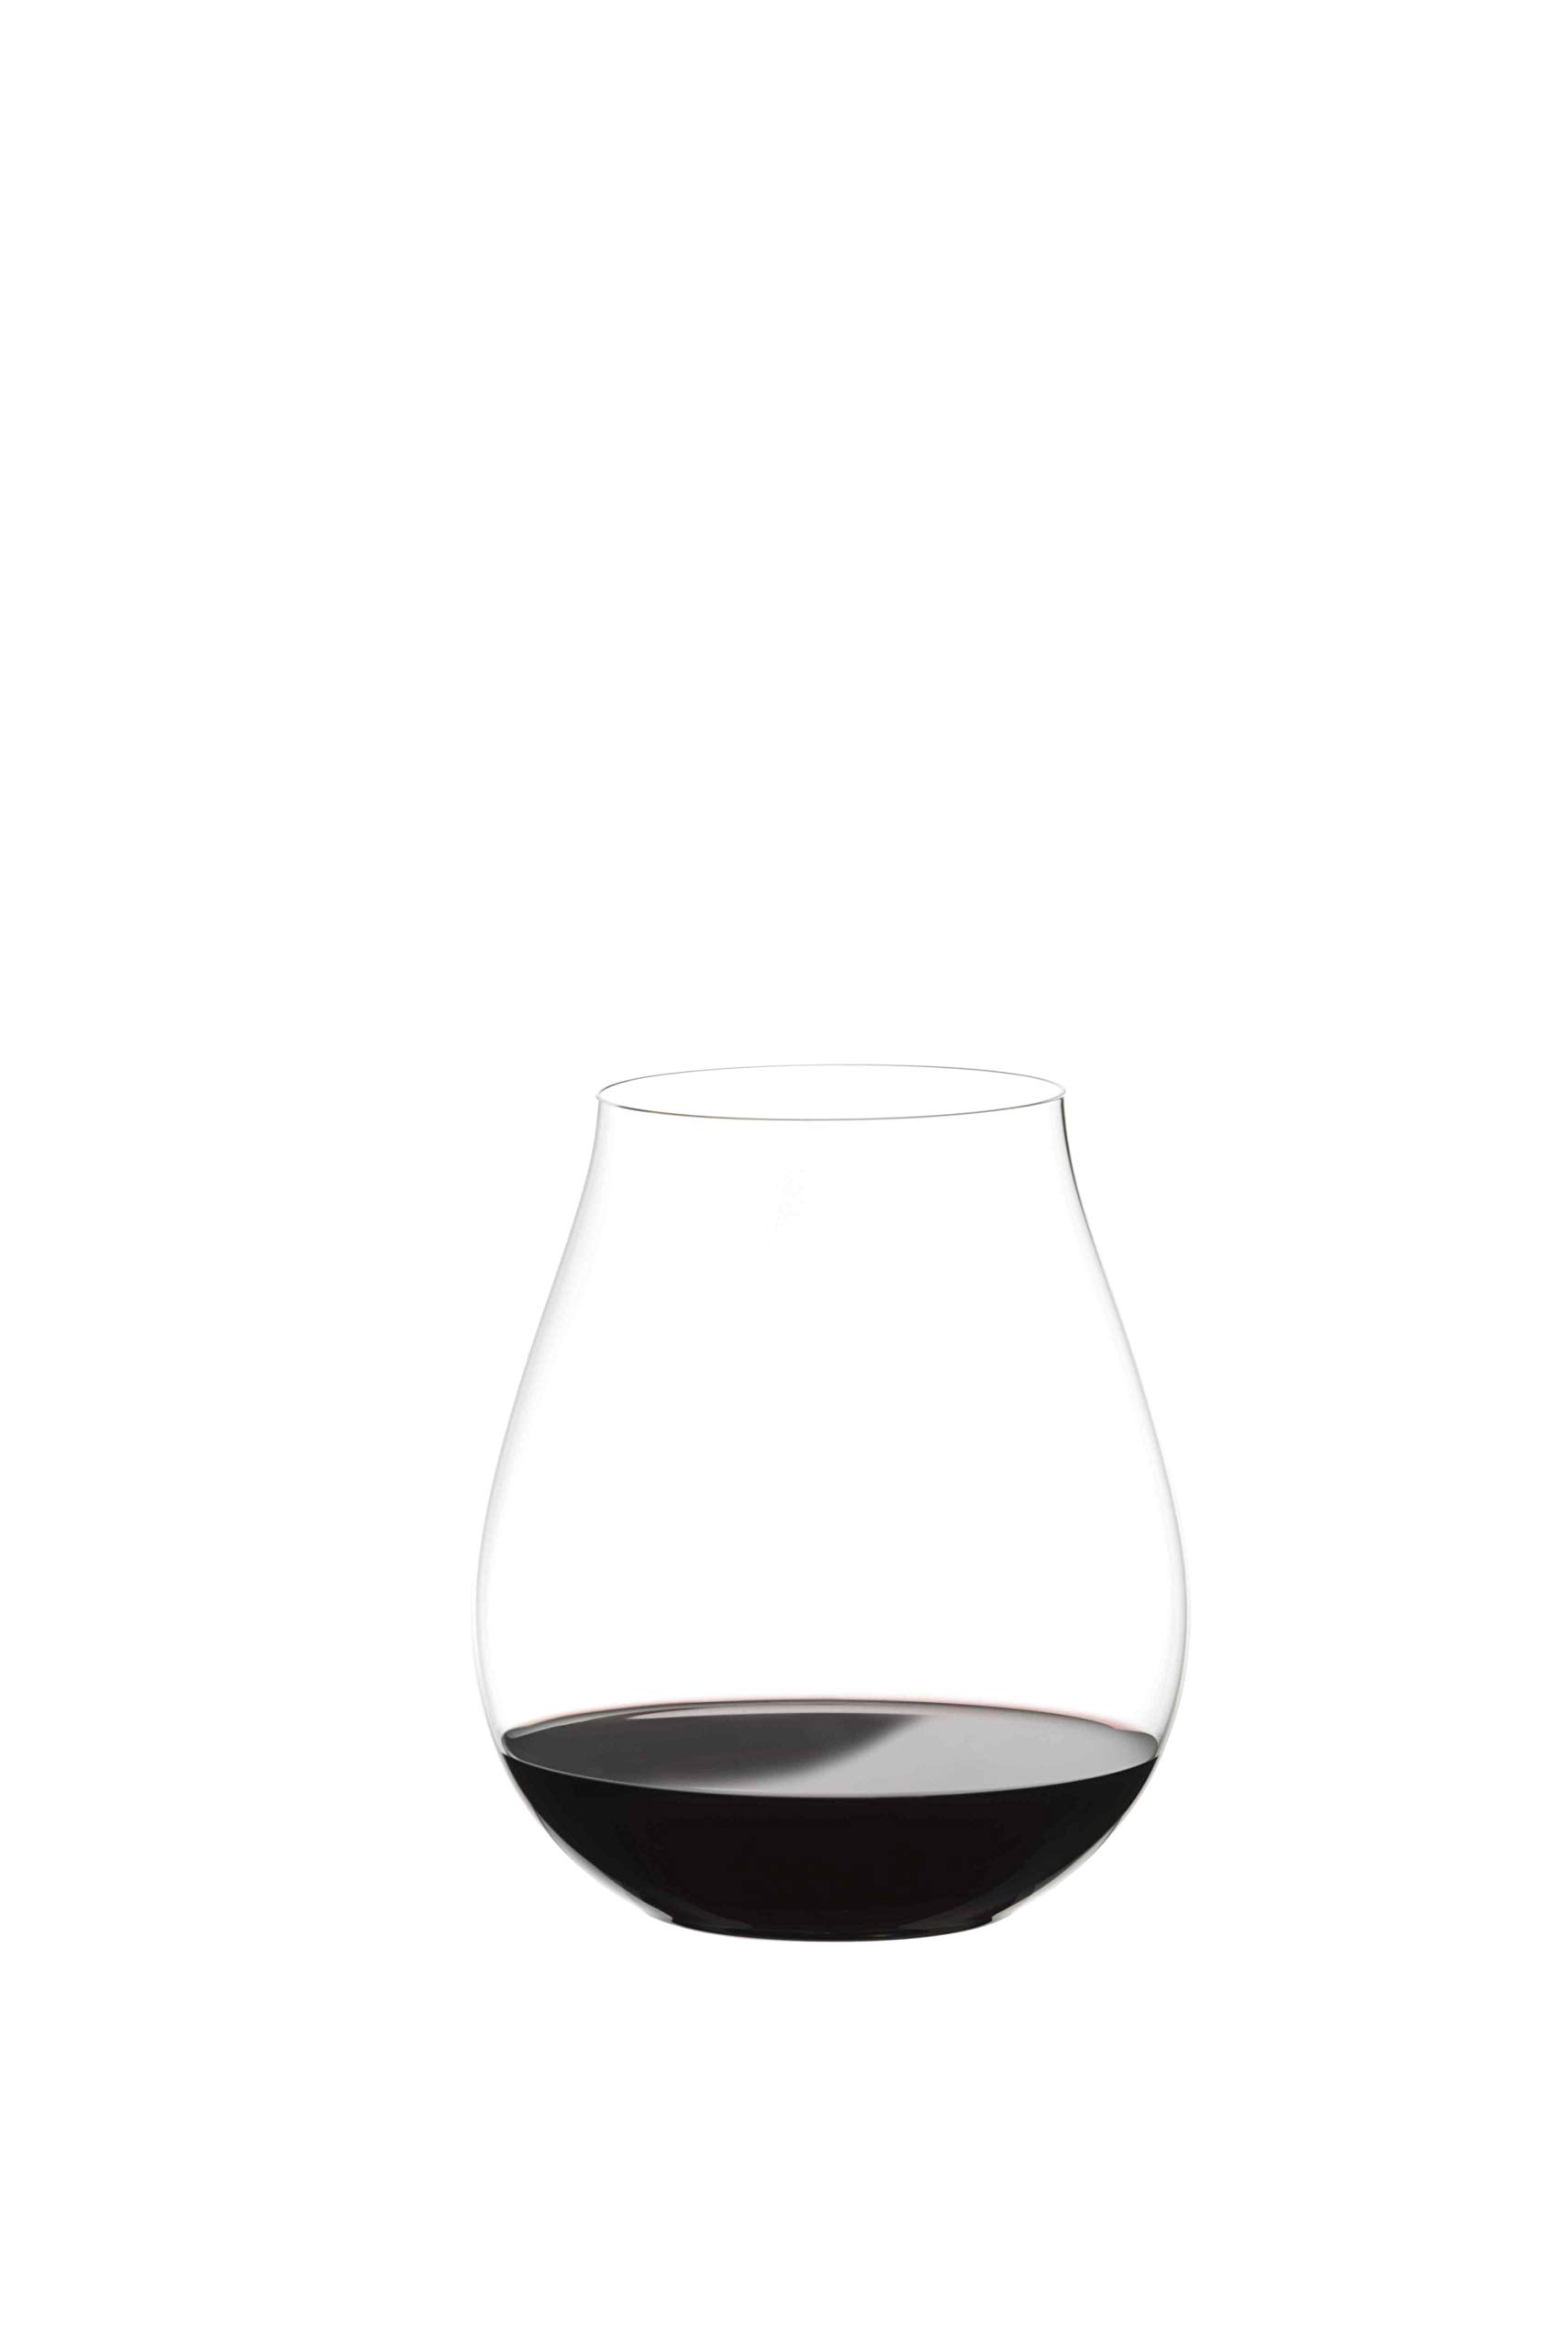 Riedel Gin Set, Set of 4 by Riedel (Image #5)